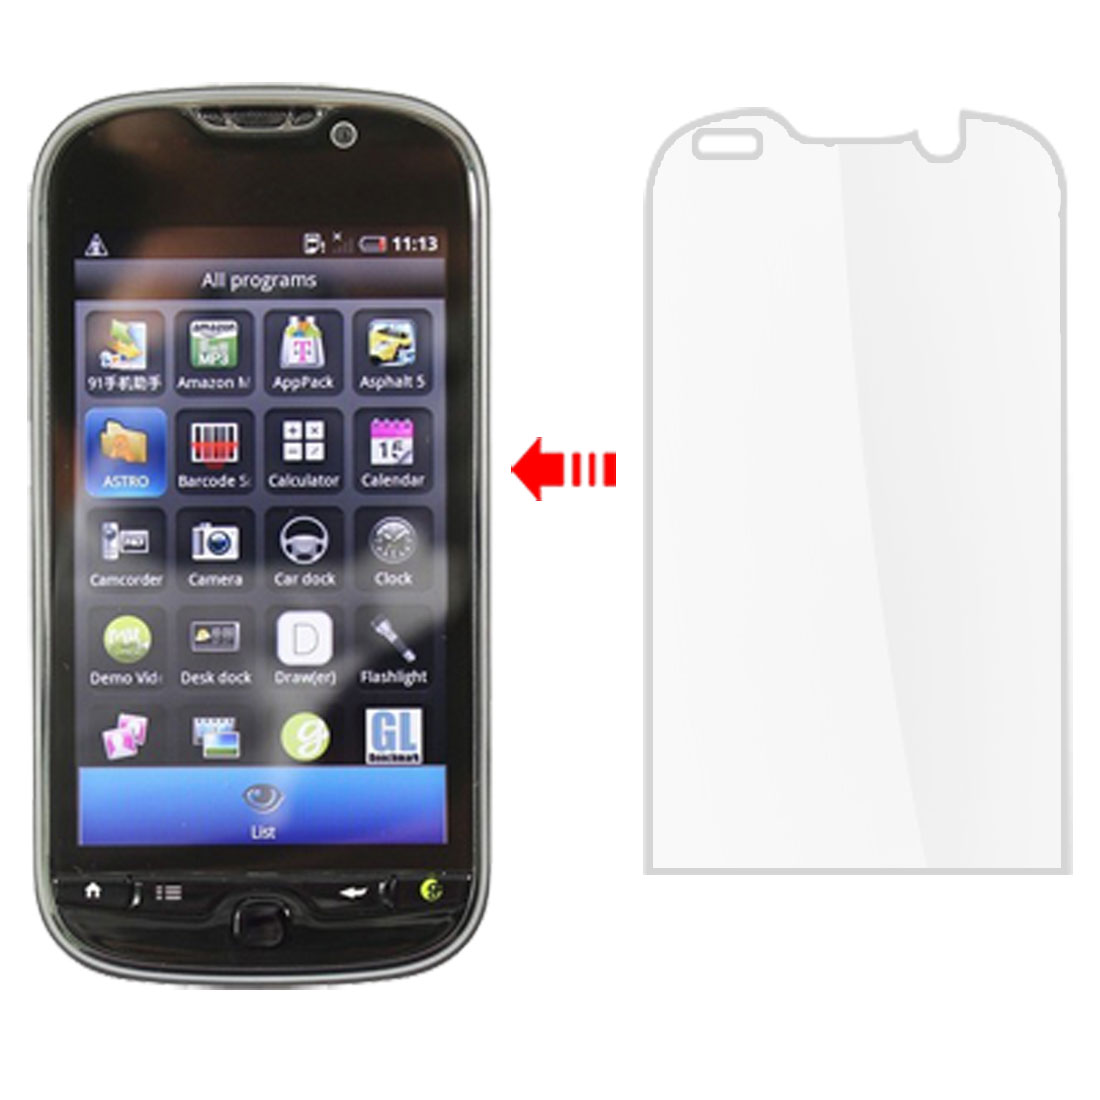 Unique Bargains LCD Screen Guard Protector Cover Clear 2 Pcs for HTC My Touch 4